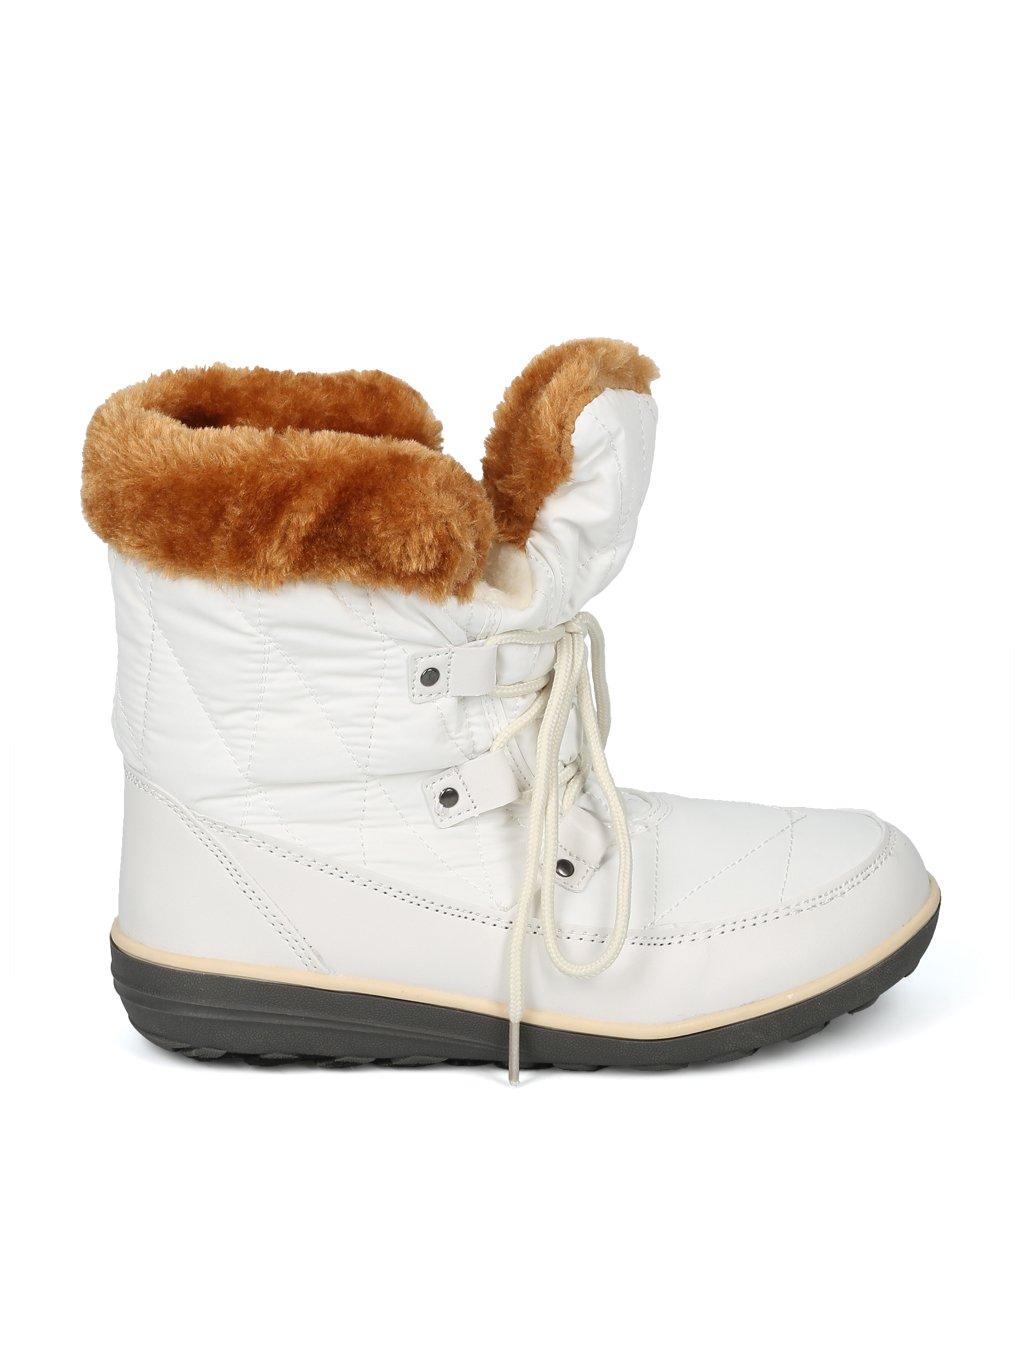 Alrisco Faux Fur Trim Lace up Outdoor Winter Boot HG06 B078MTKDF2 6.5 M US|White Mix Media